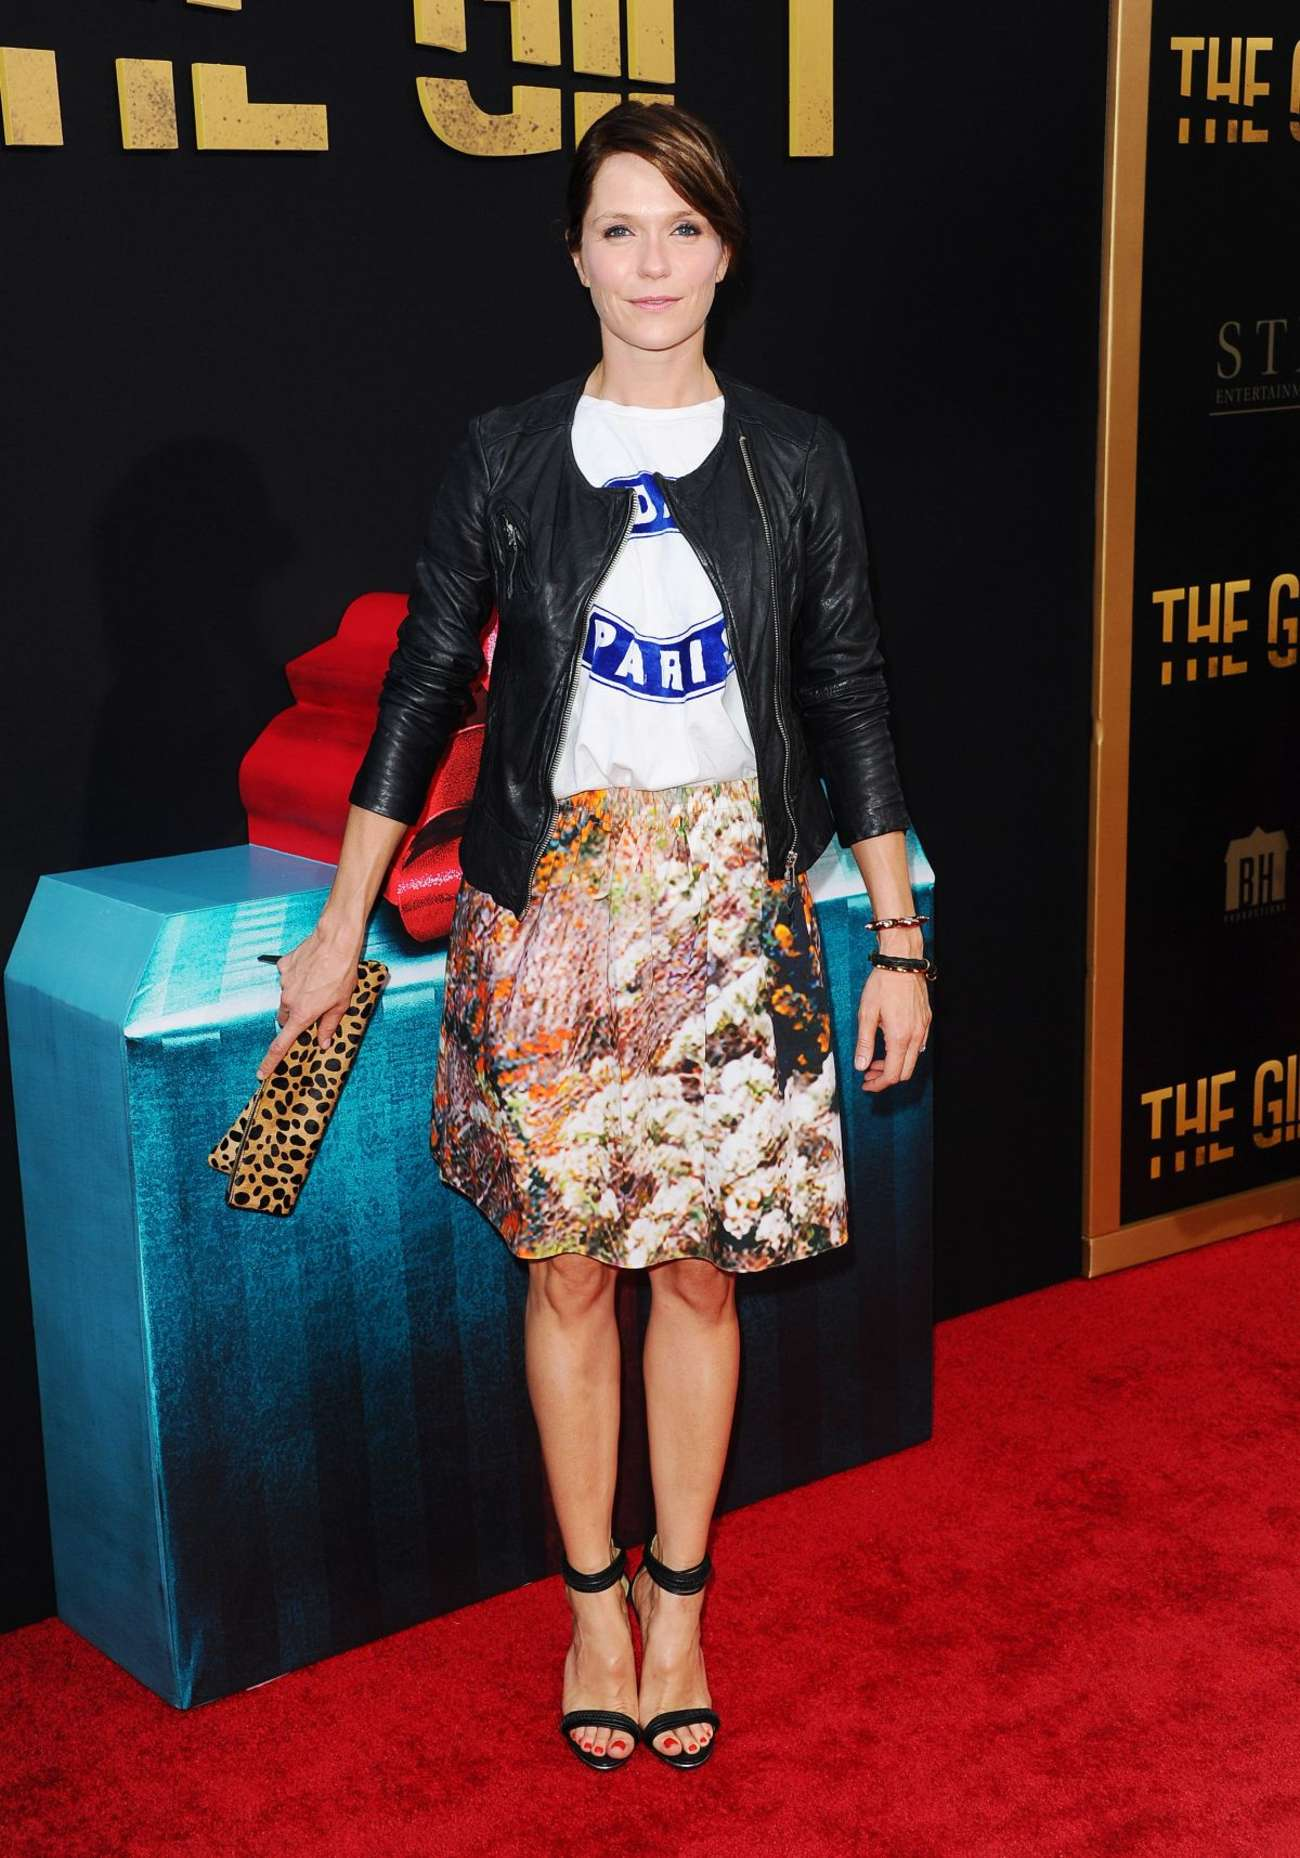 Katie Aselton The Gift Premiere in Los Angeles